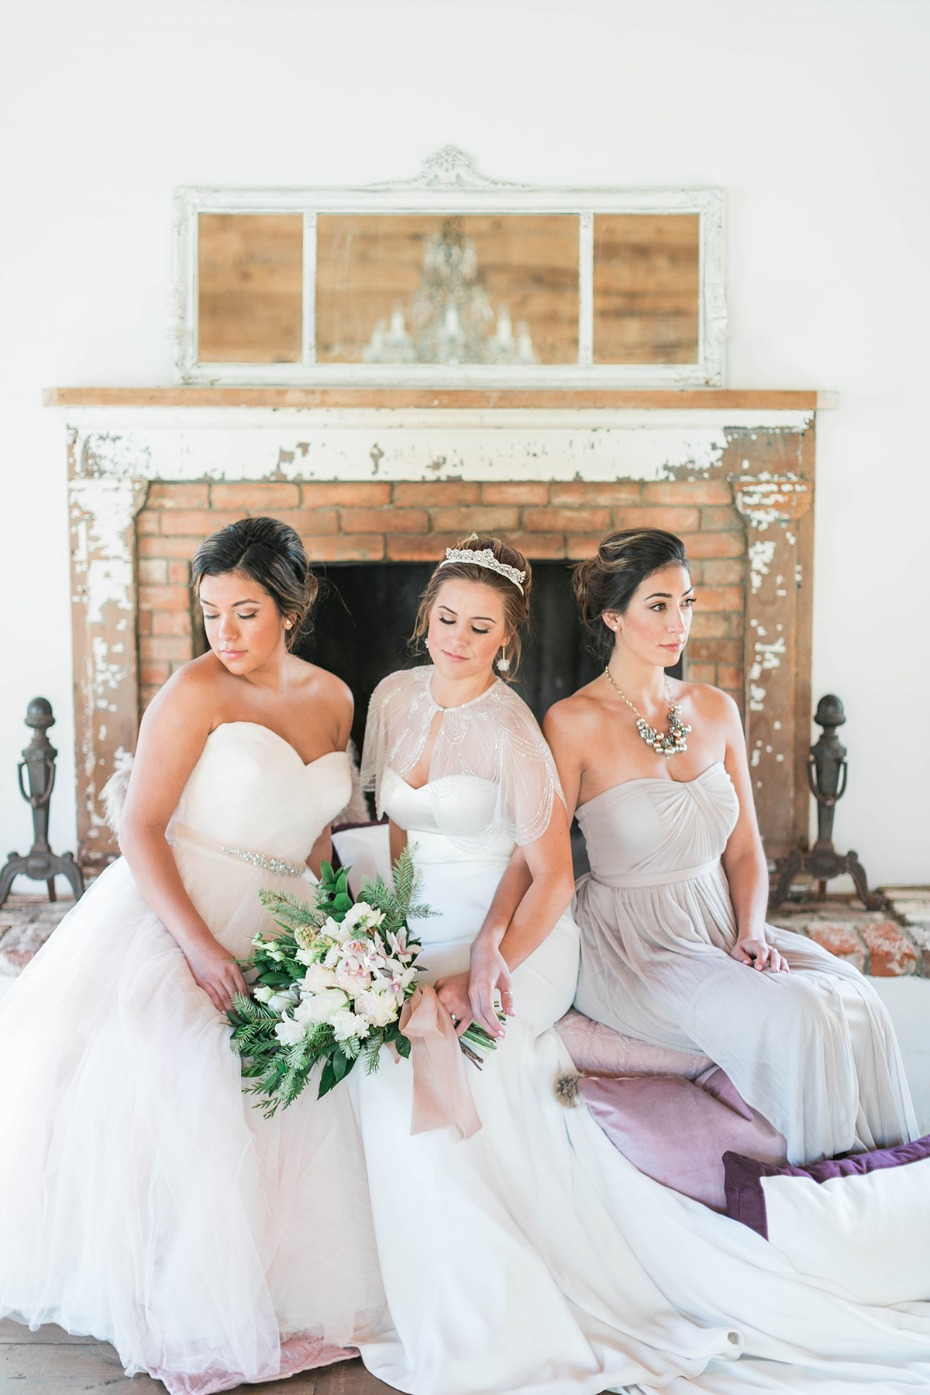 Bridal party for your winter to spring wedding